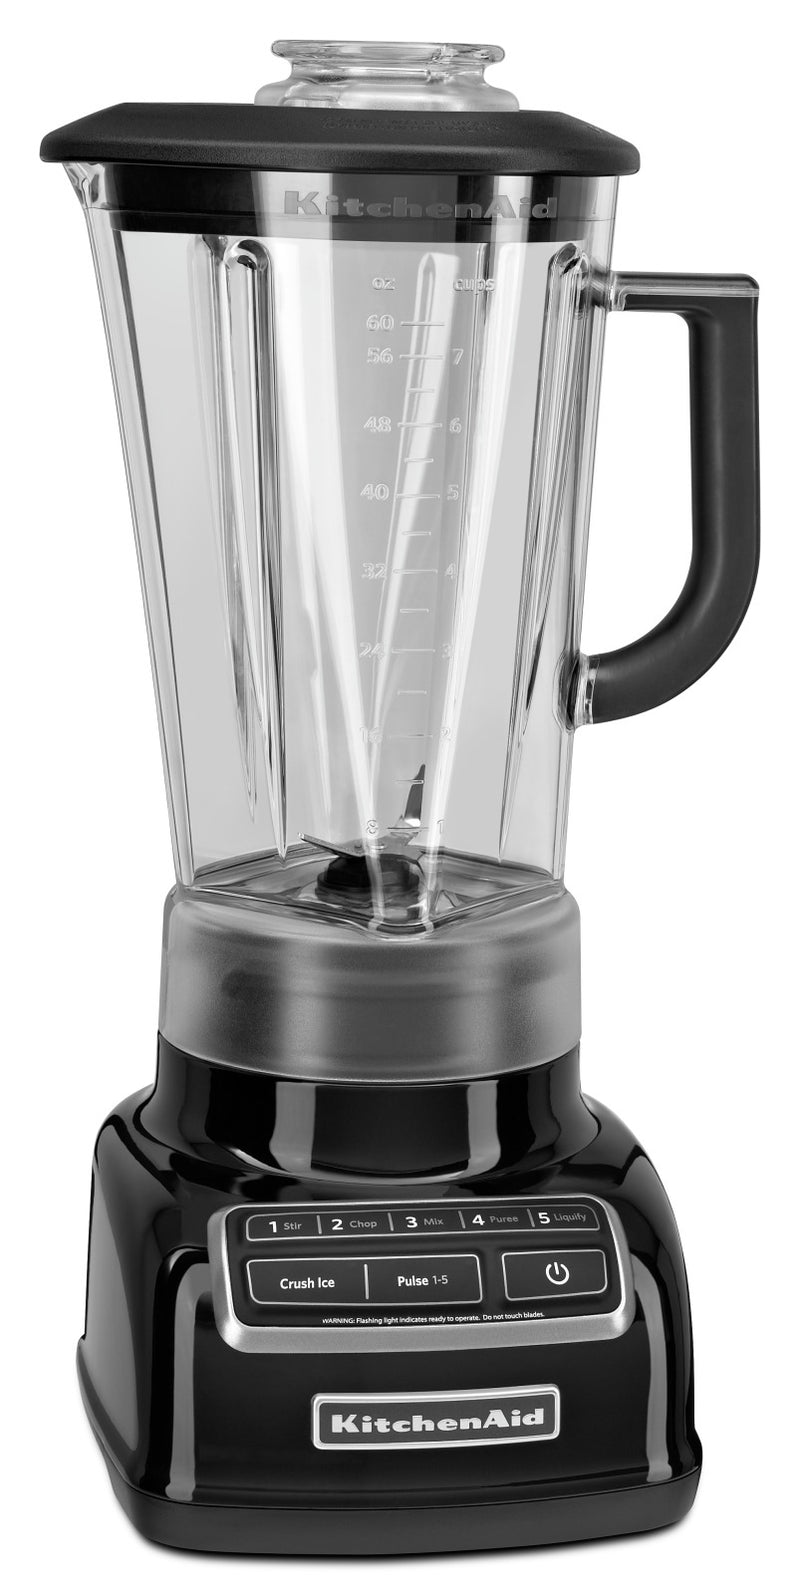 KitchenAid Five-Speed Diamond Blender - KSB1575OB|Mélangeur à base losange à cinq vitesses KitchenAid - KSB1575OB